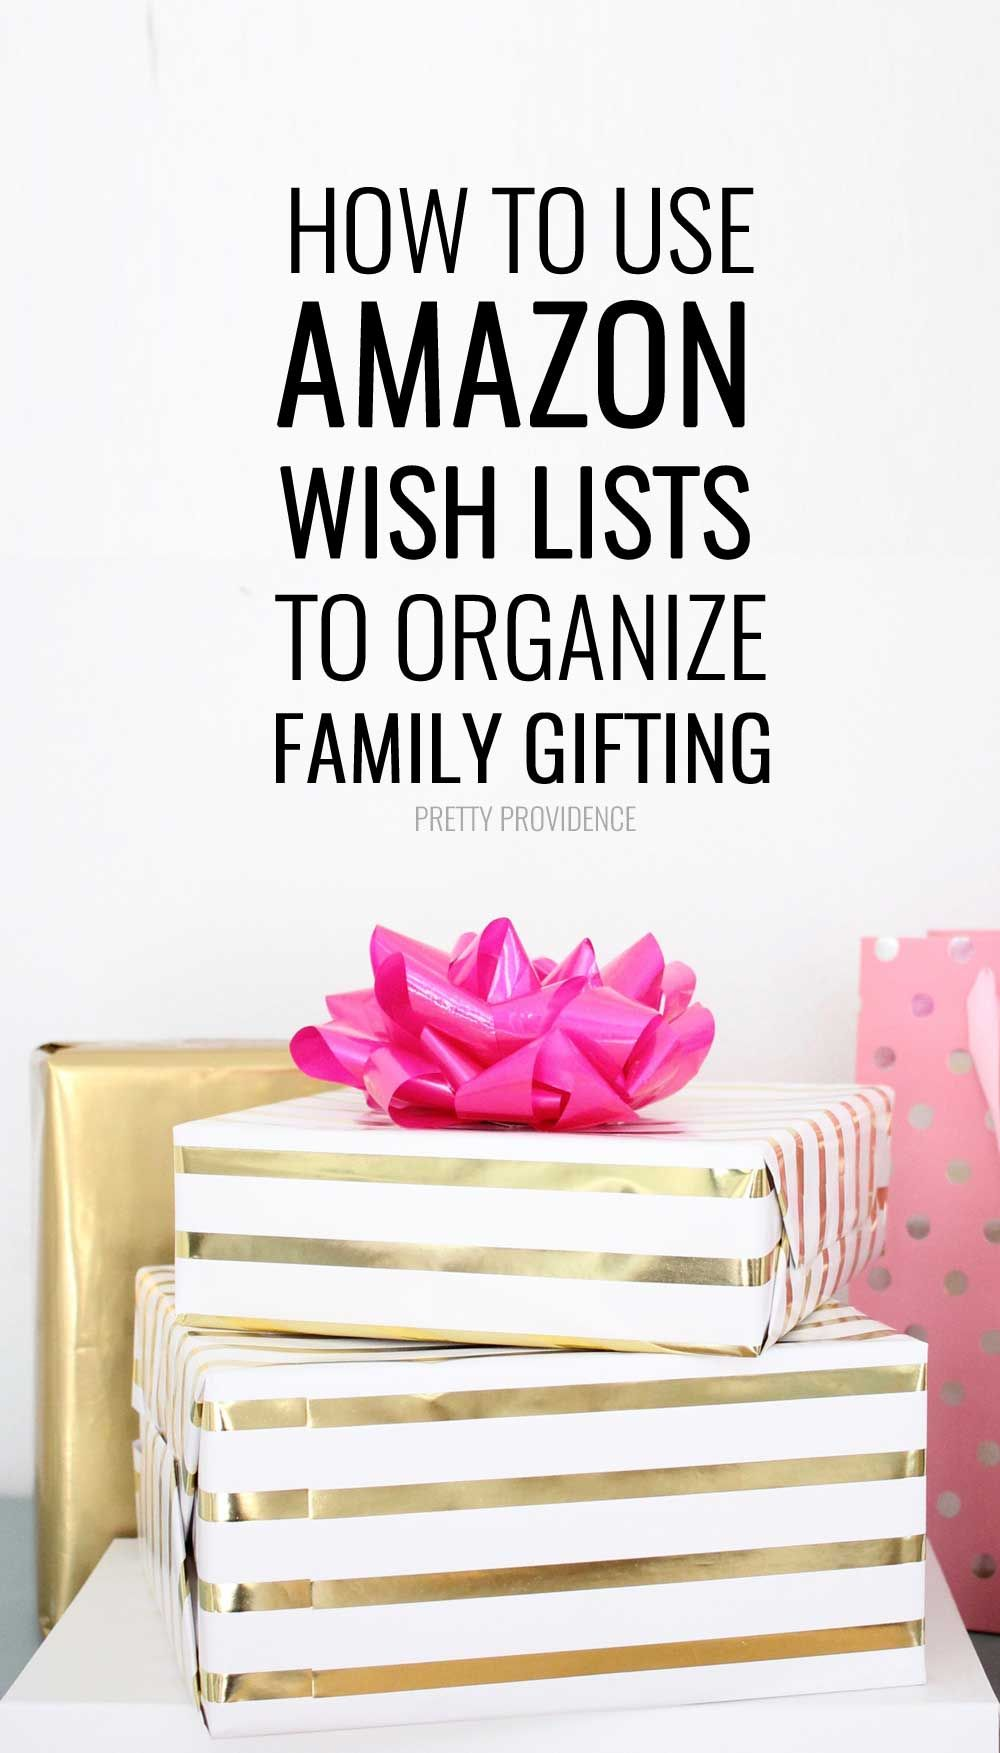 How to Use Amazon Wish Lists for Gifting | Pinterest | Gift ...